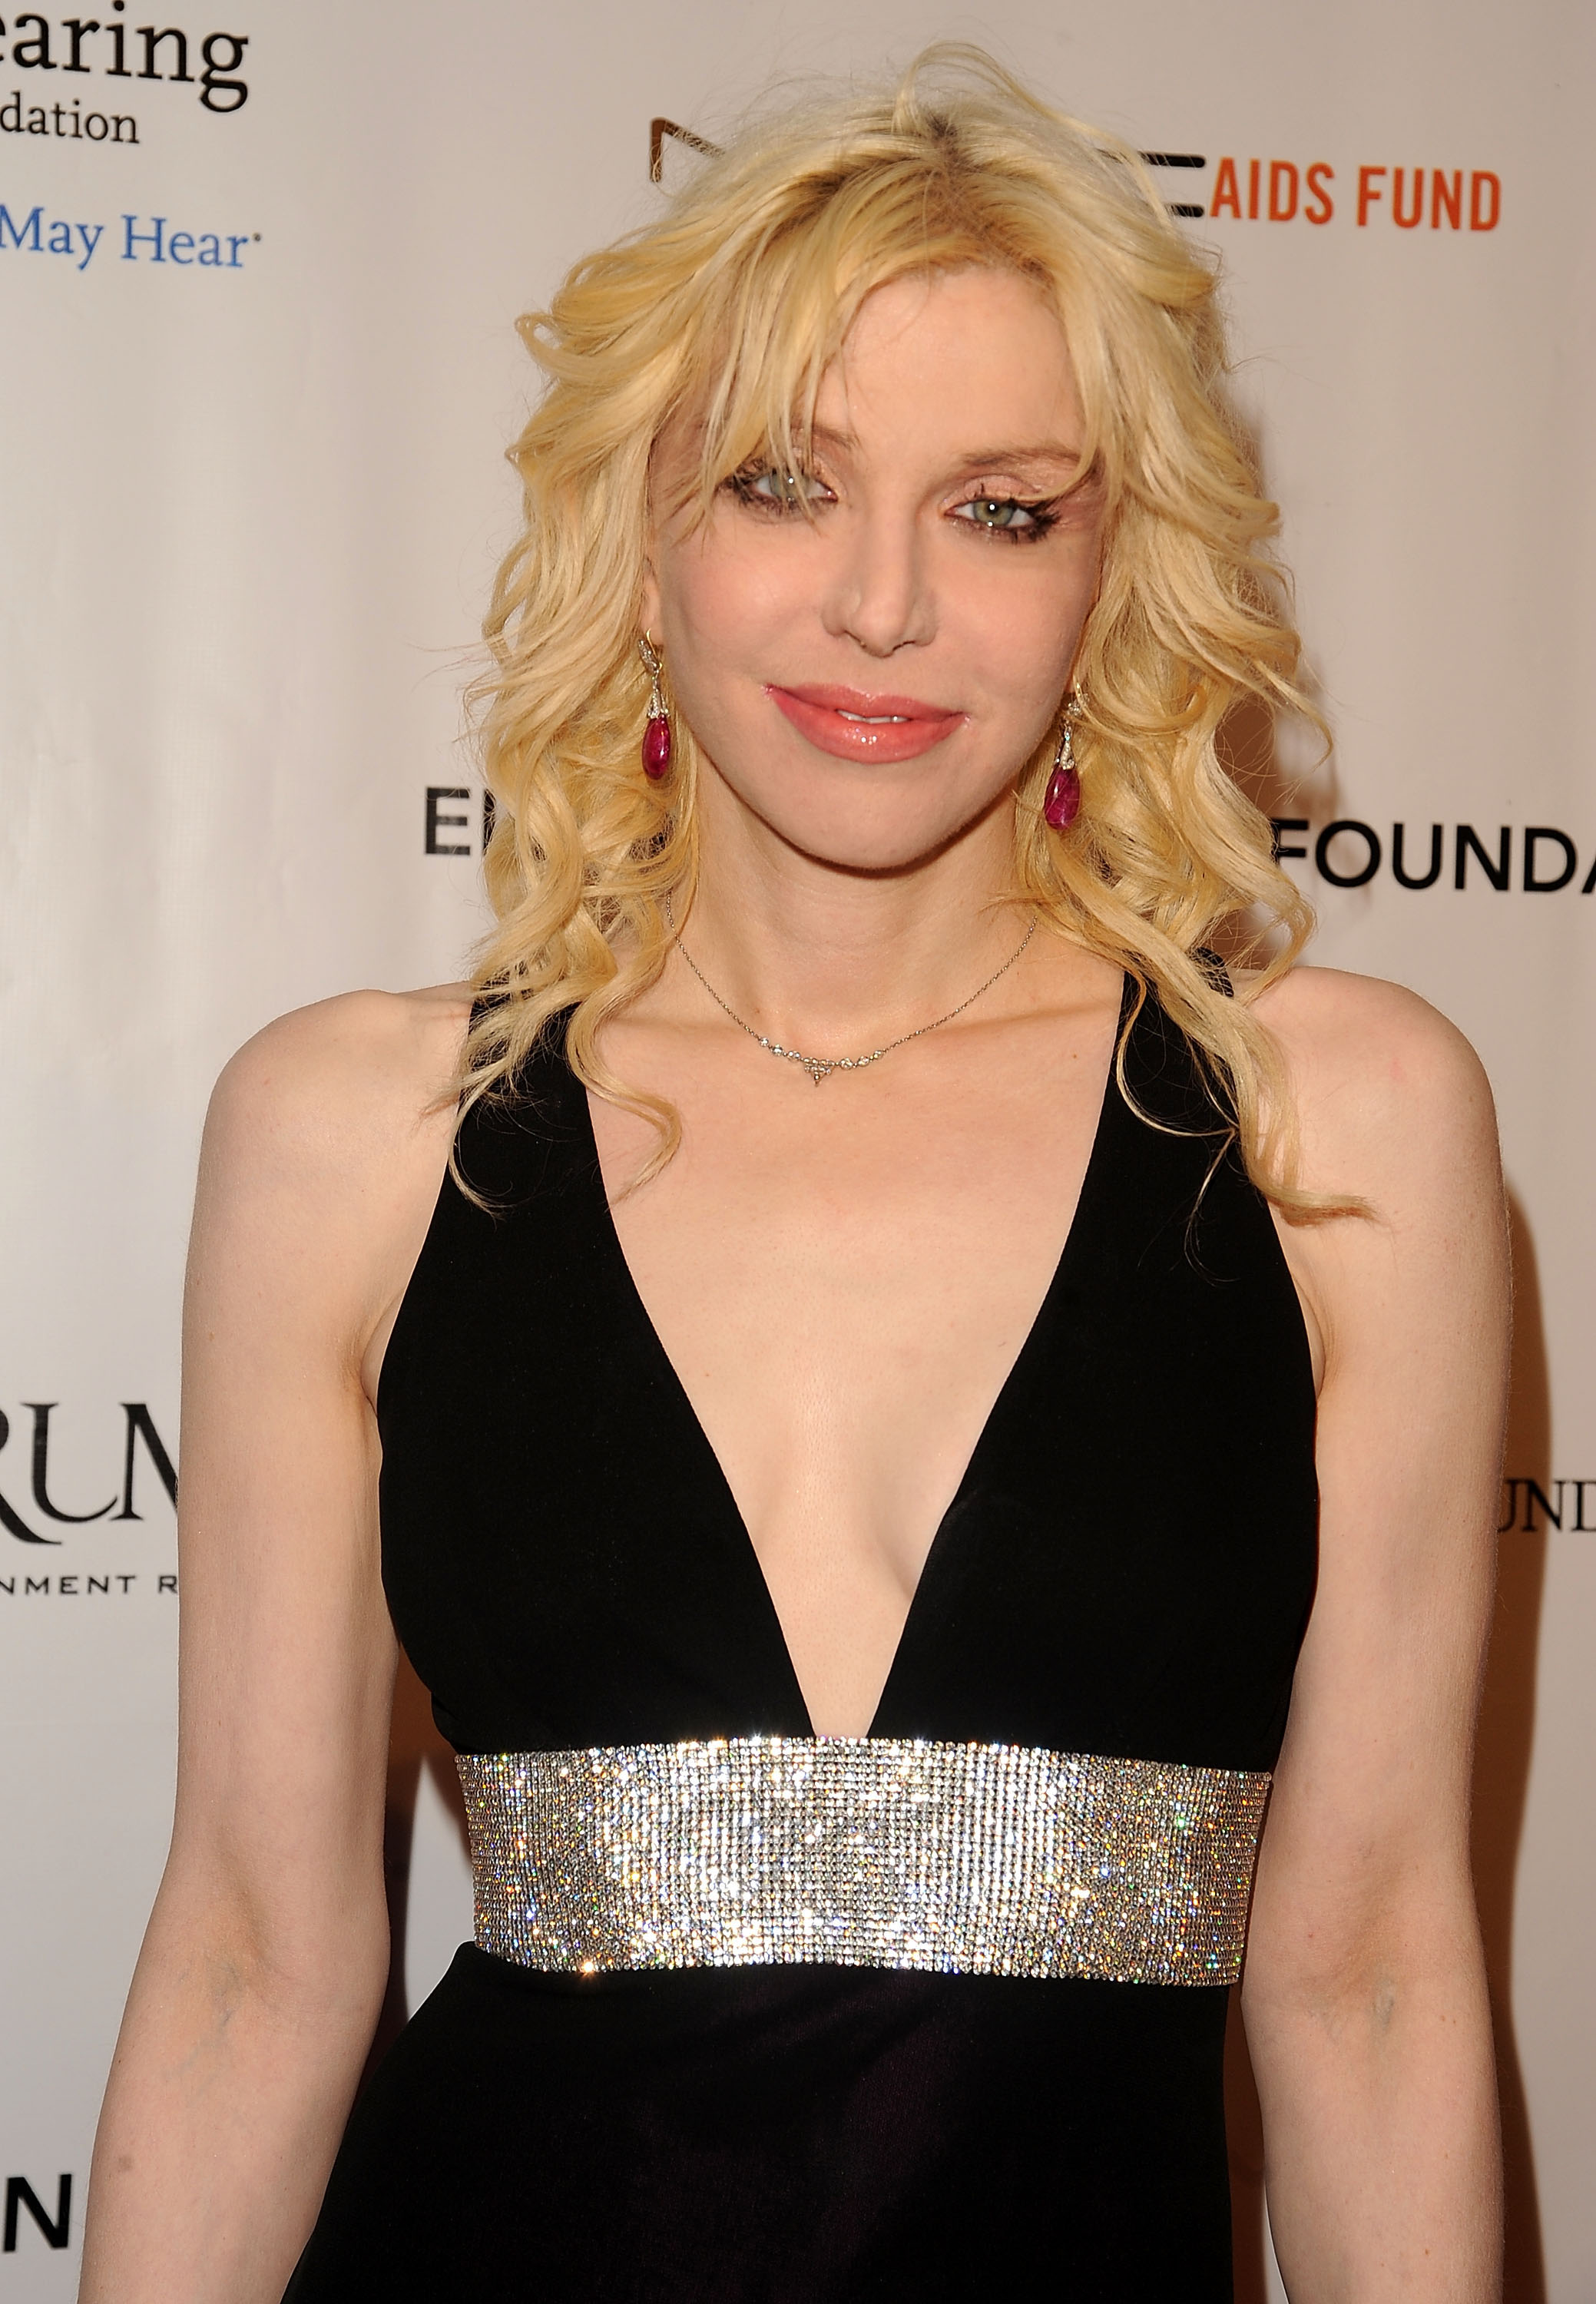 Courtney Love Plastic Surgery Before And After Face Photos 1